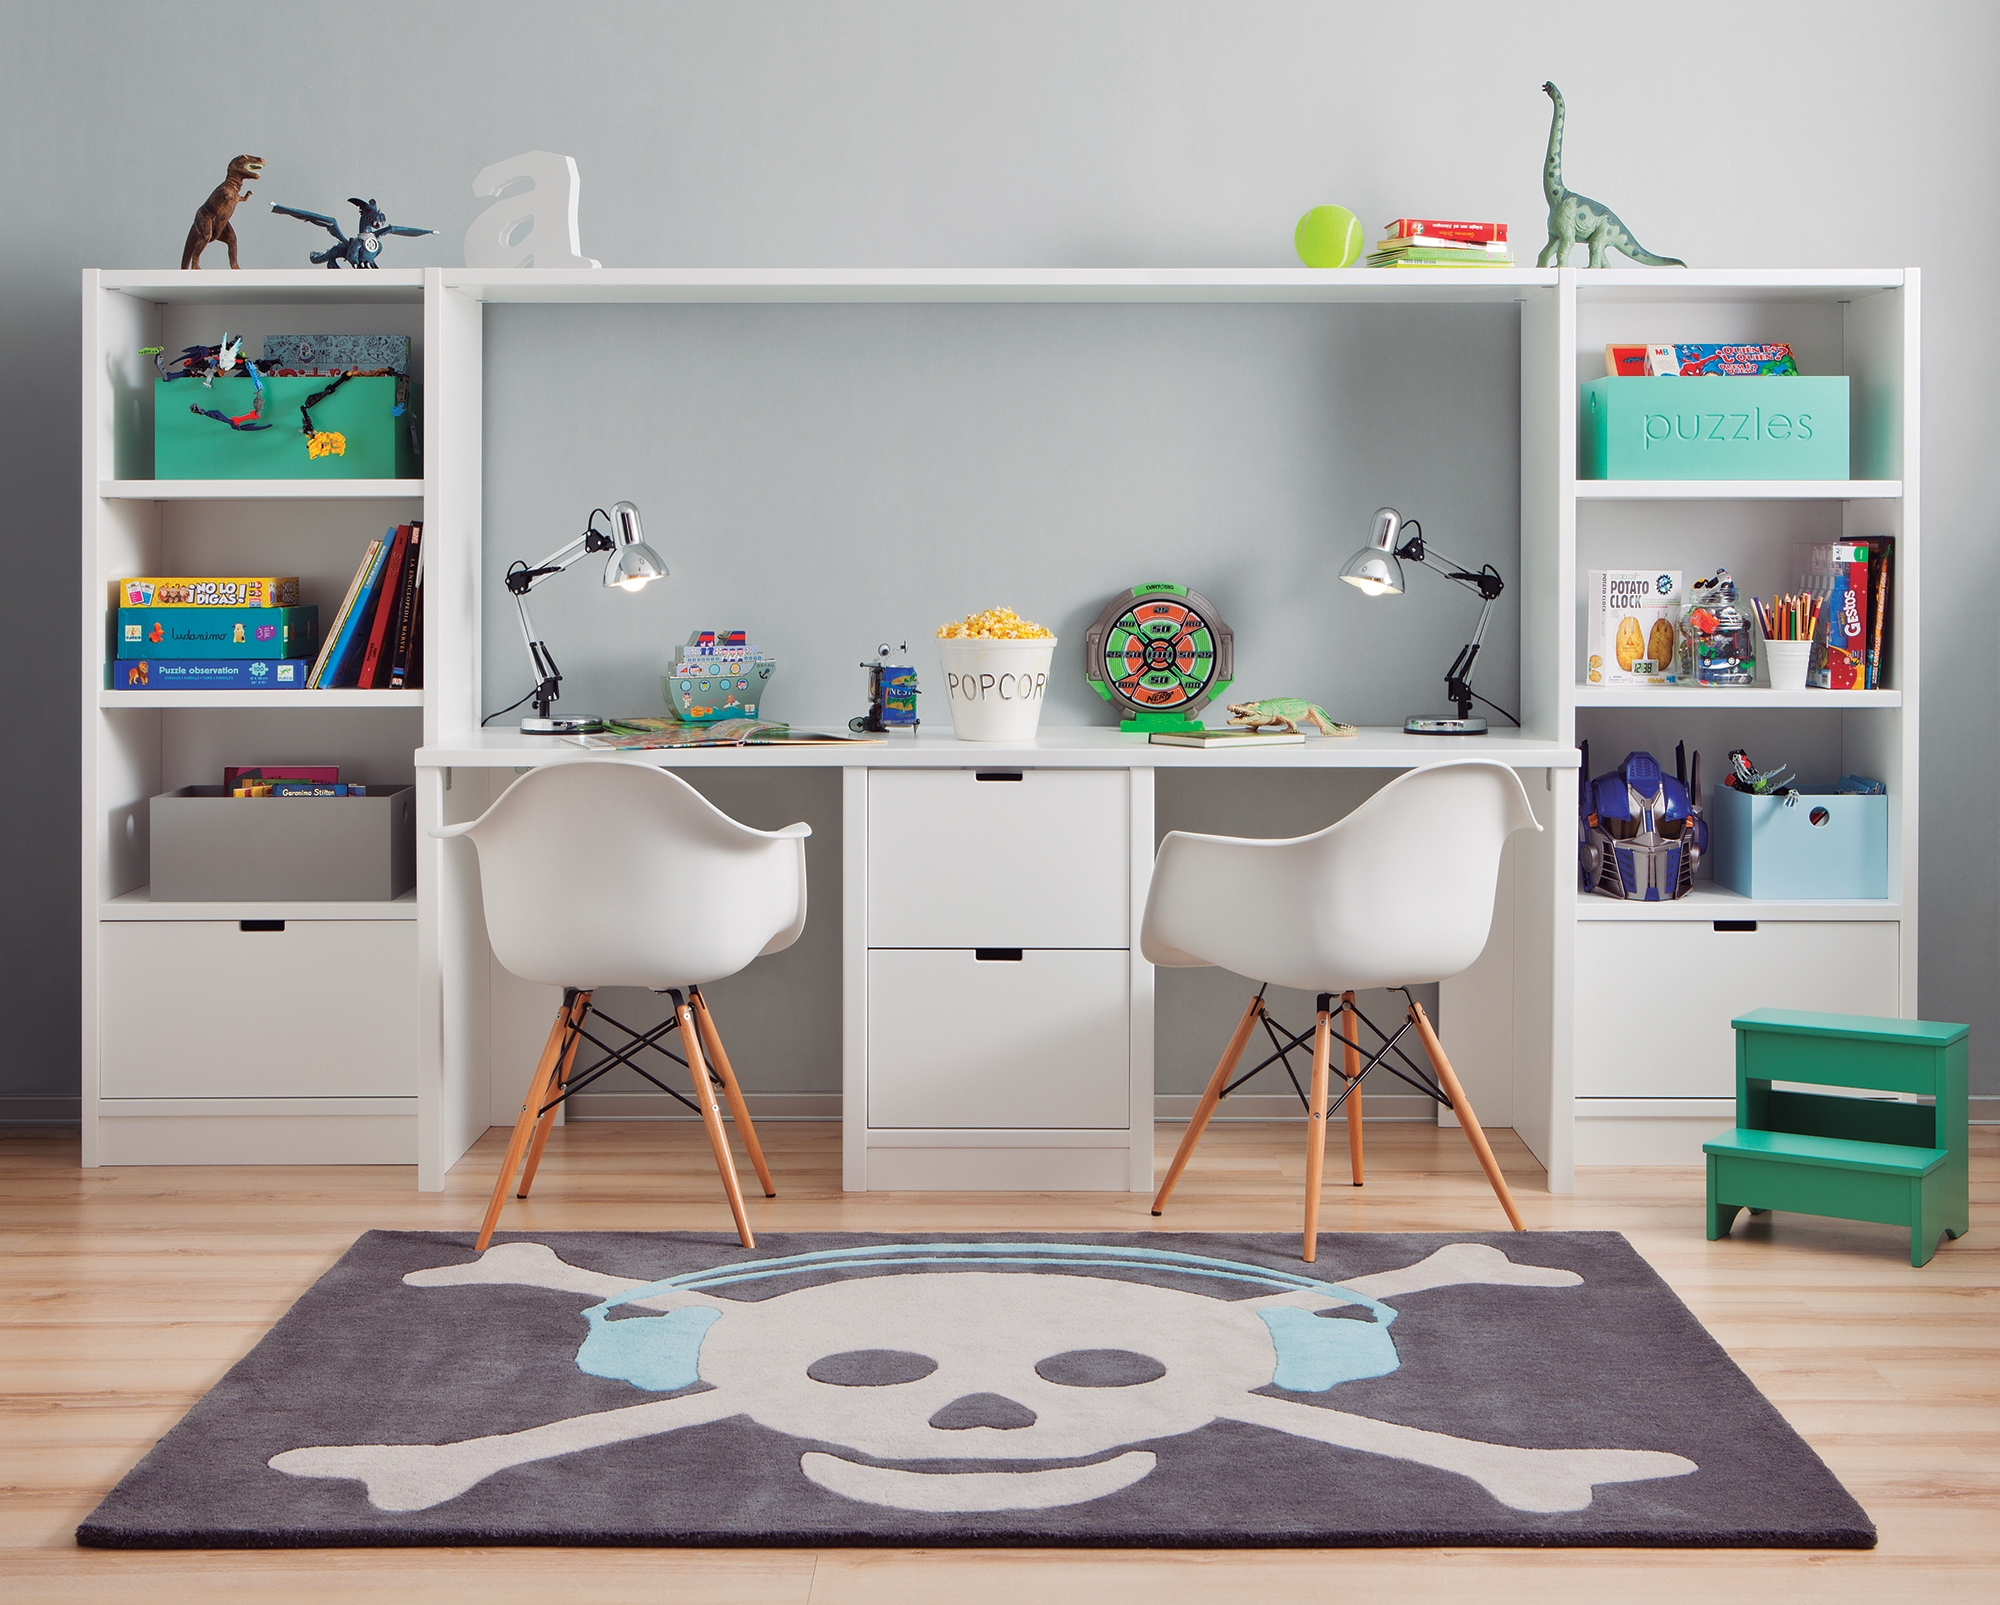 o acheter un bureau pour enfant. Black Bedroom Furniture Sets. Home Design Ideas